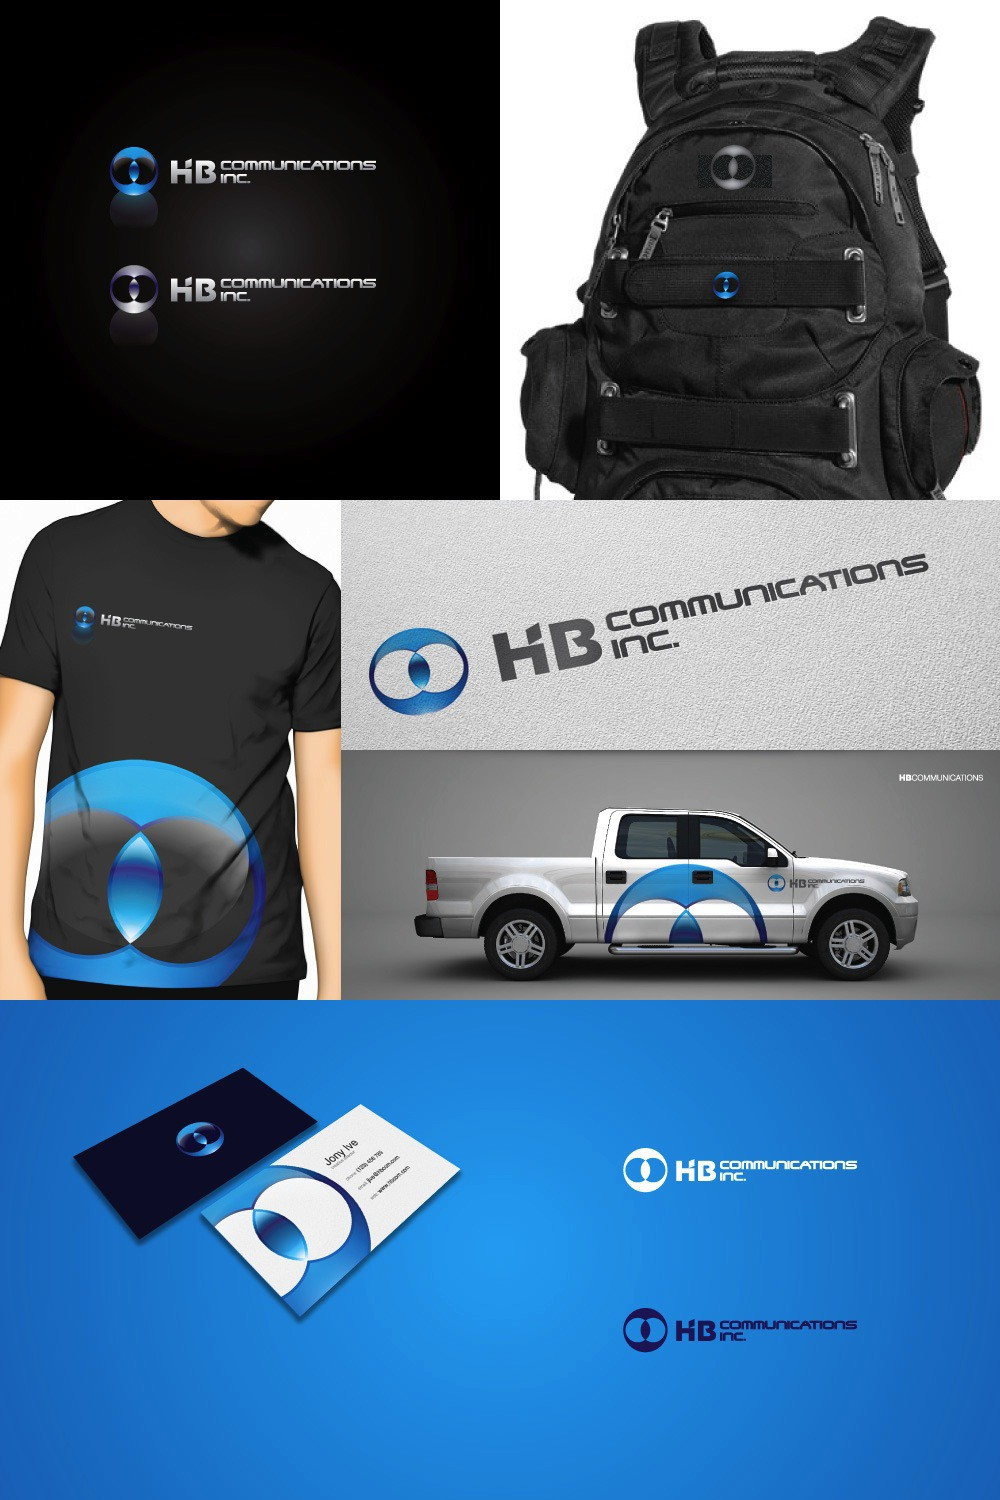 New logo wanted for HB Communications